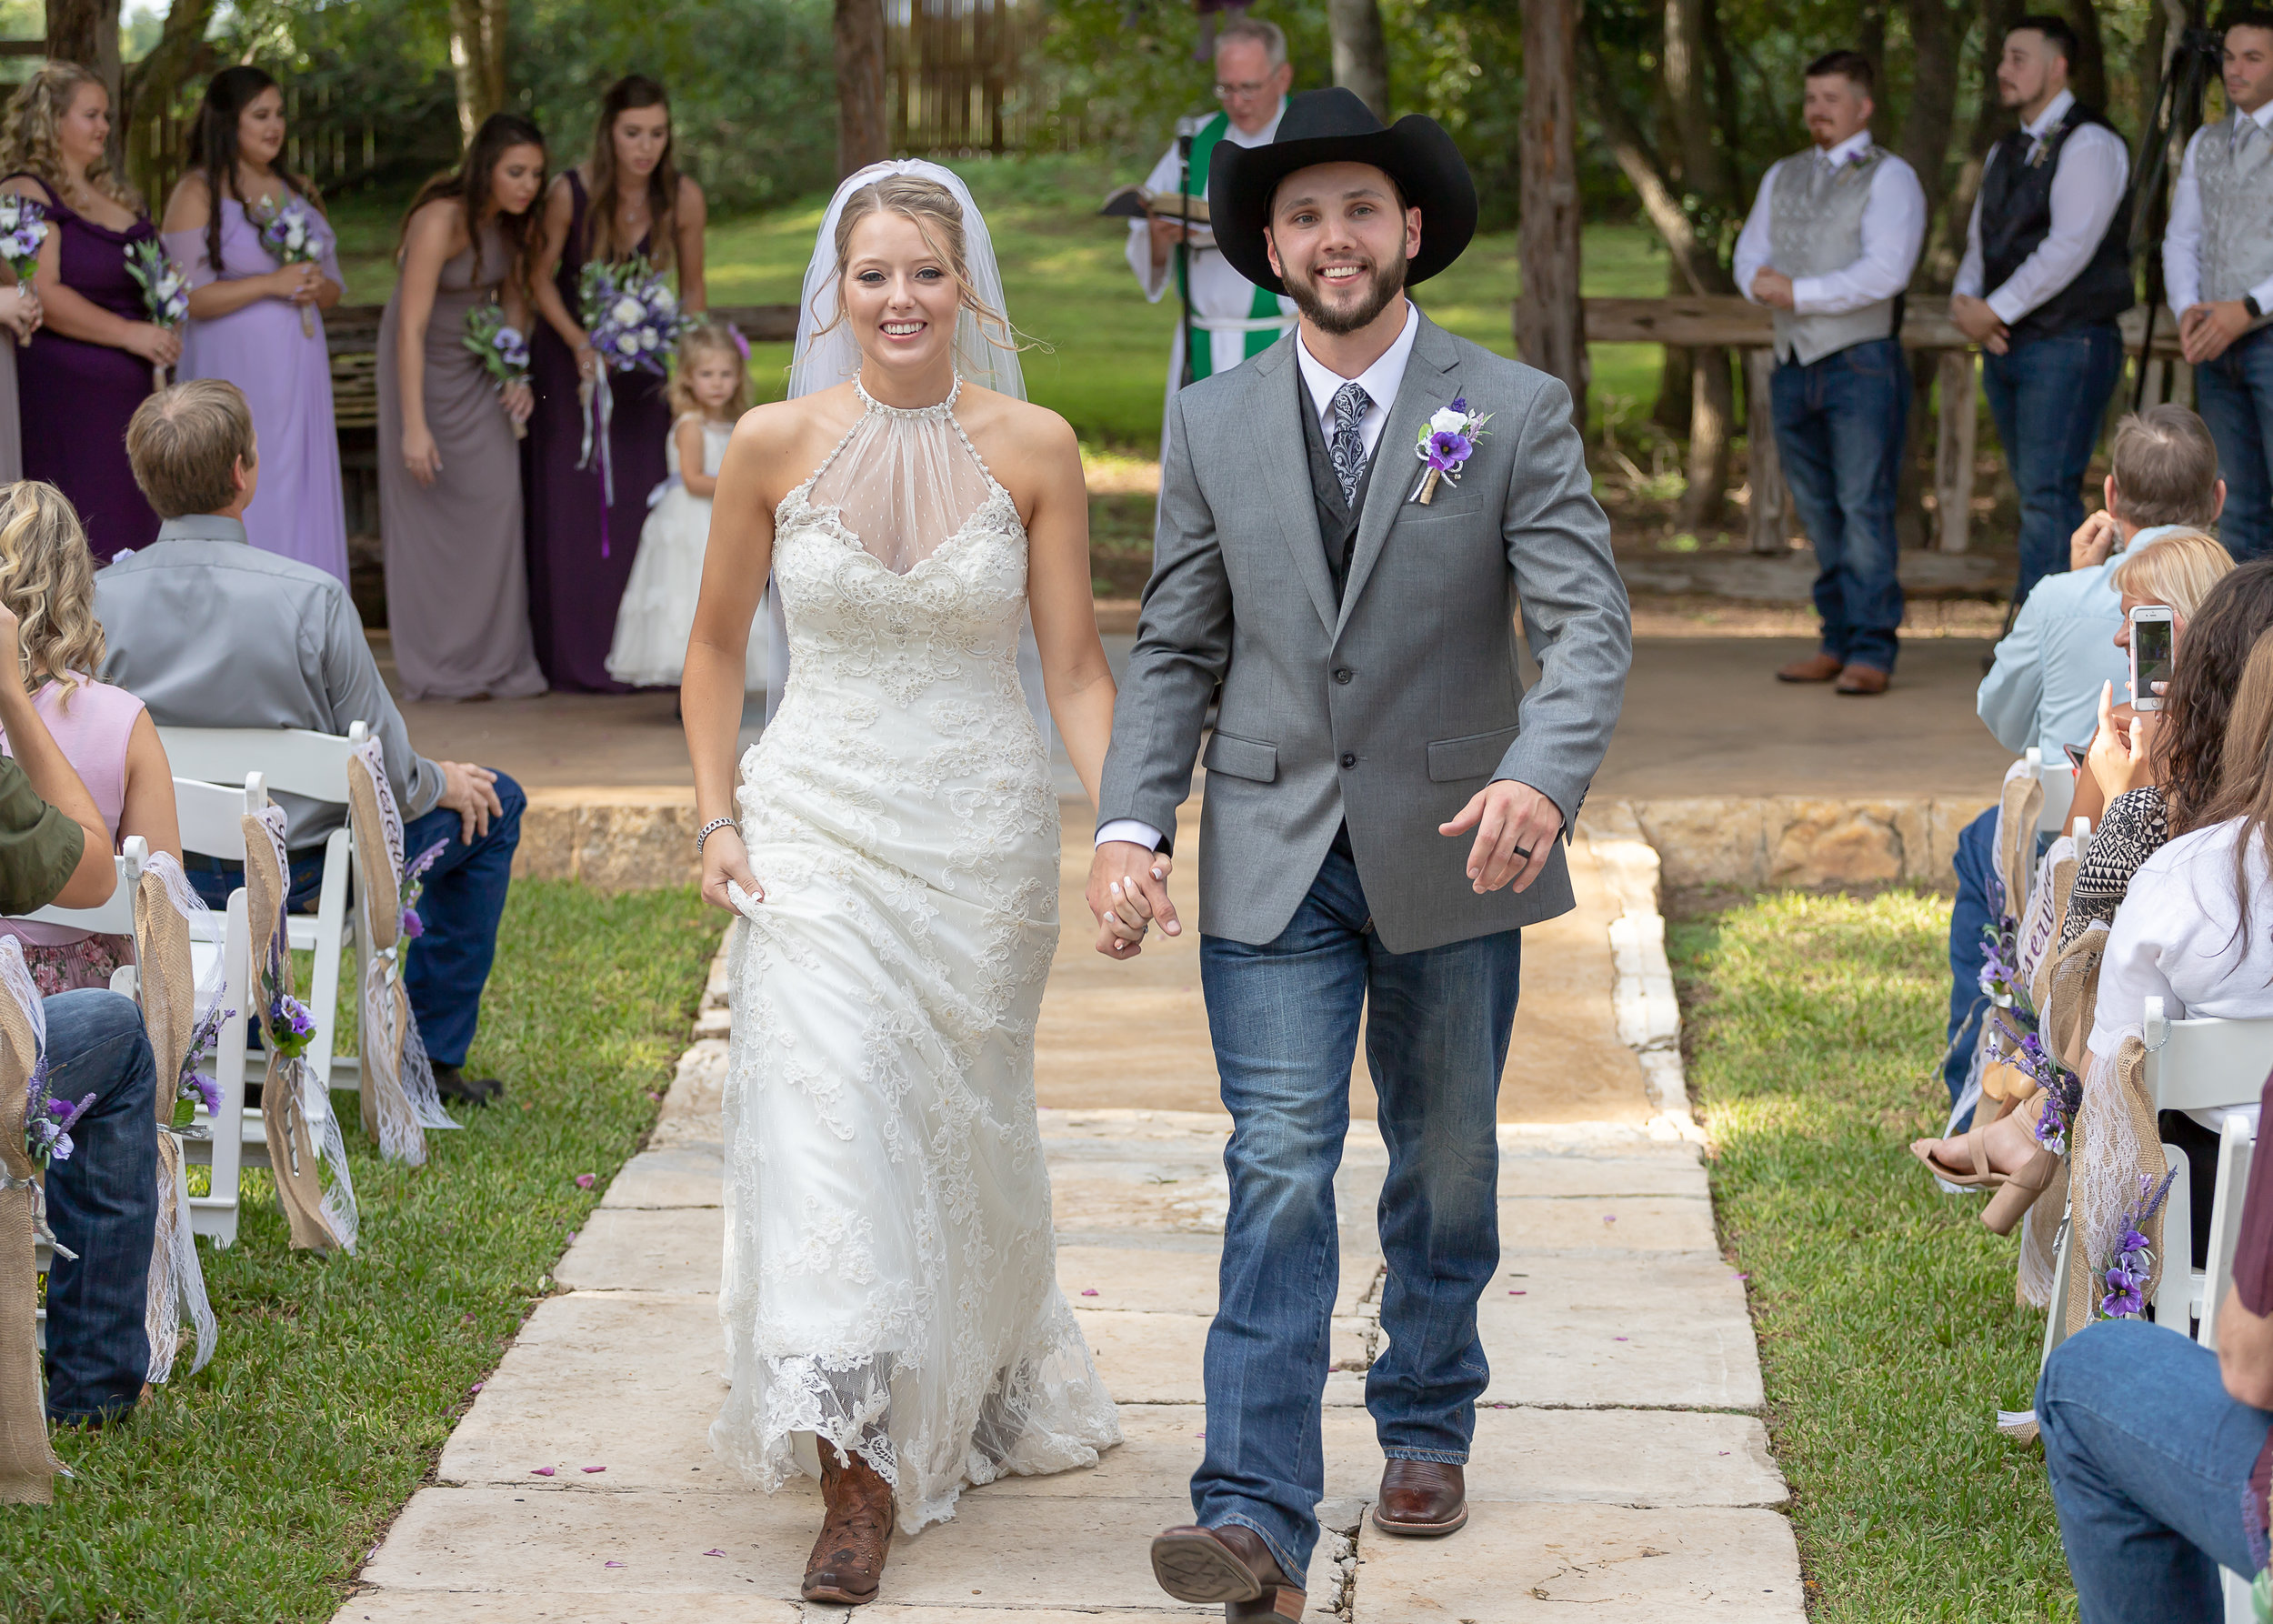 The Hale Wedding walking out